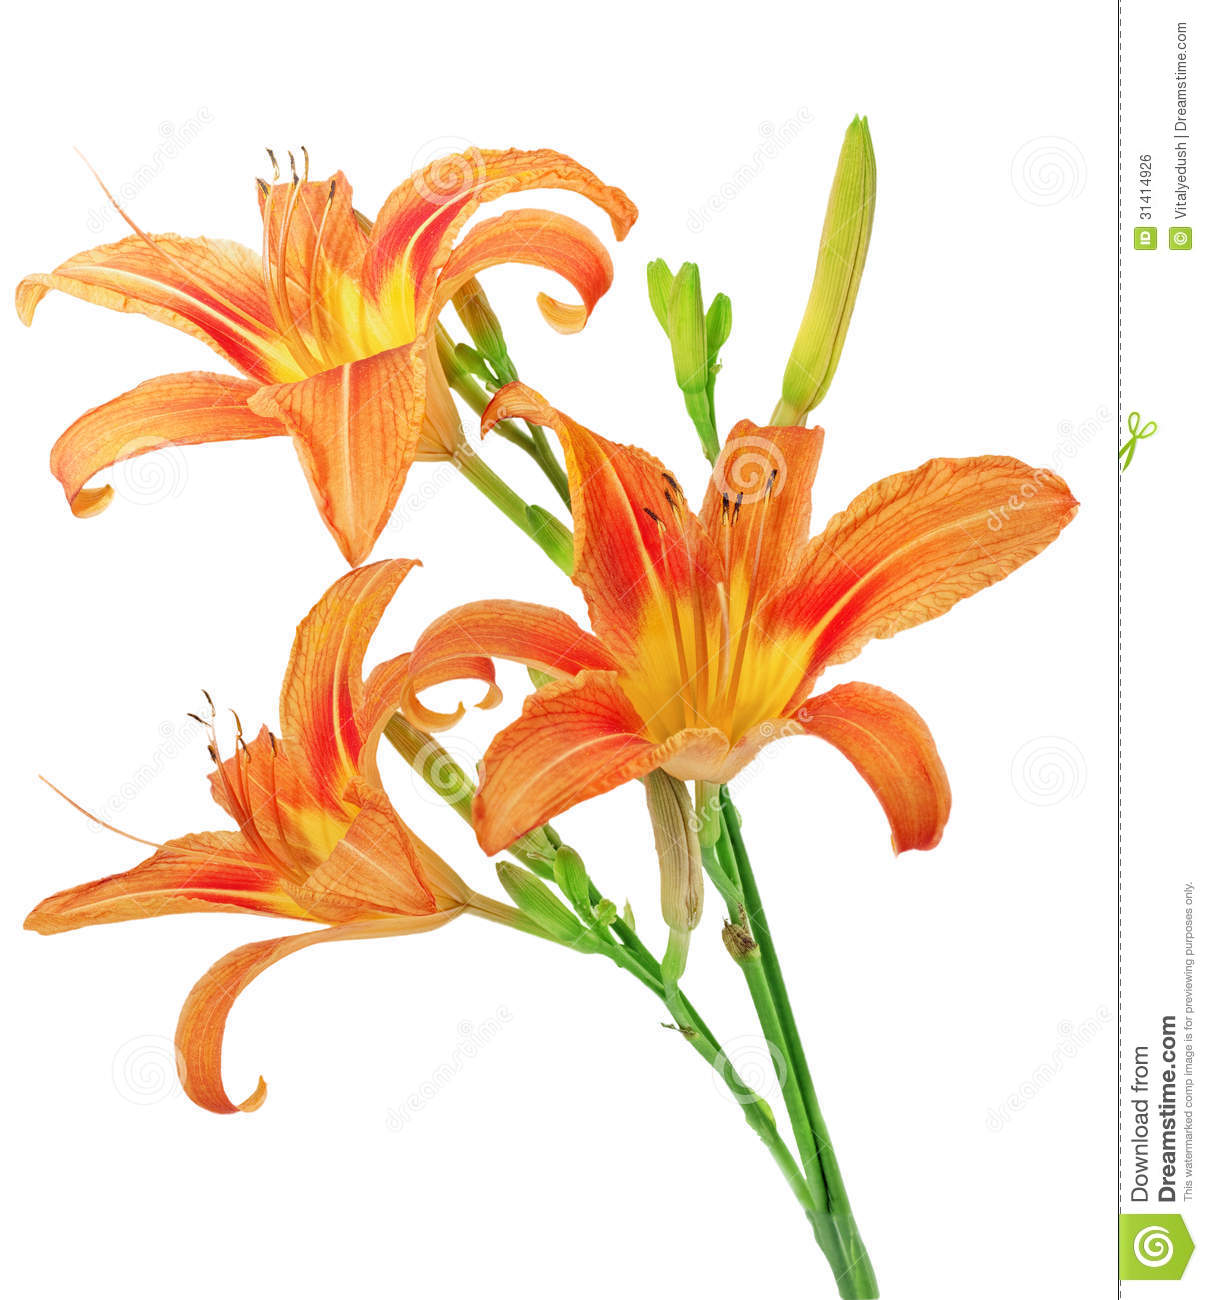 Tiger lilies on white background isolated stock photo image of tiger lilies on white background isolated lillium close izmirmasajfo Images